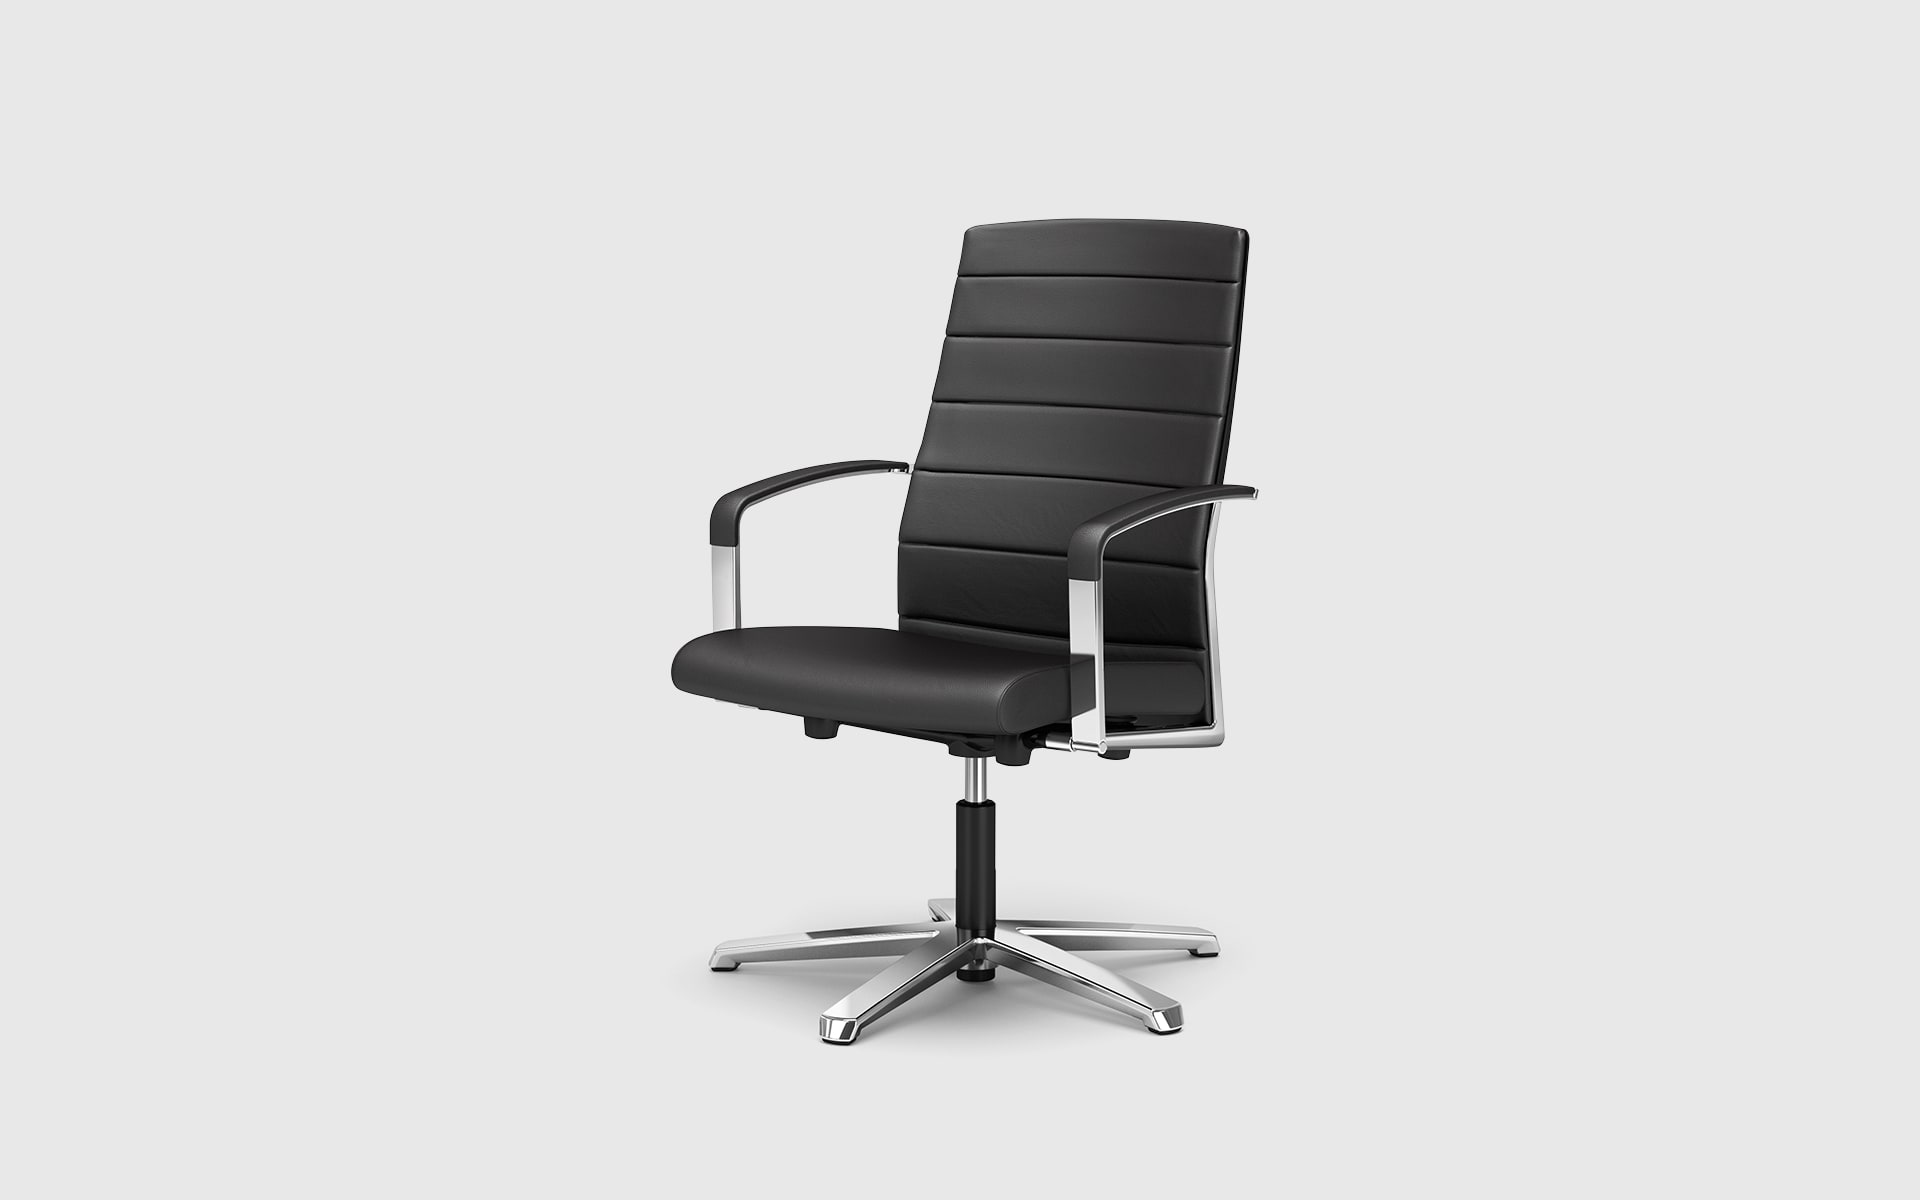 K+N Agenda conference chair by ITO Design in black